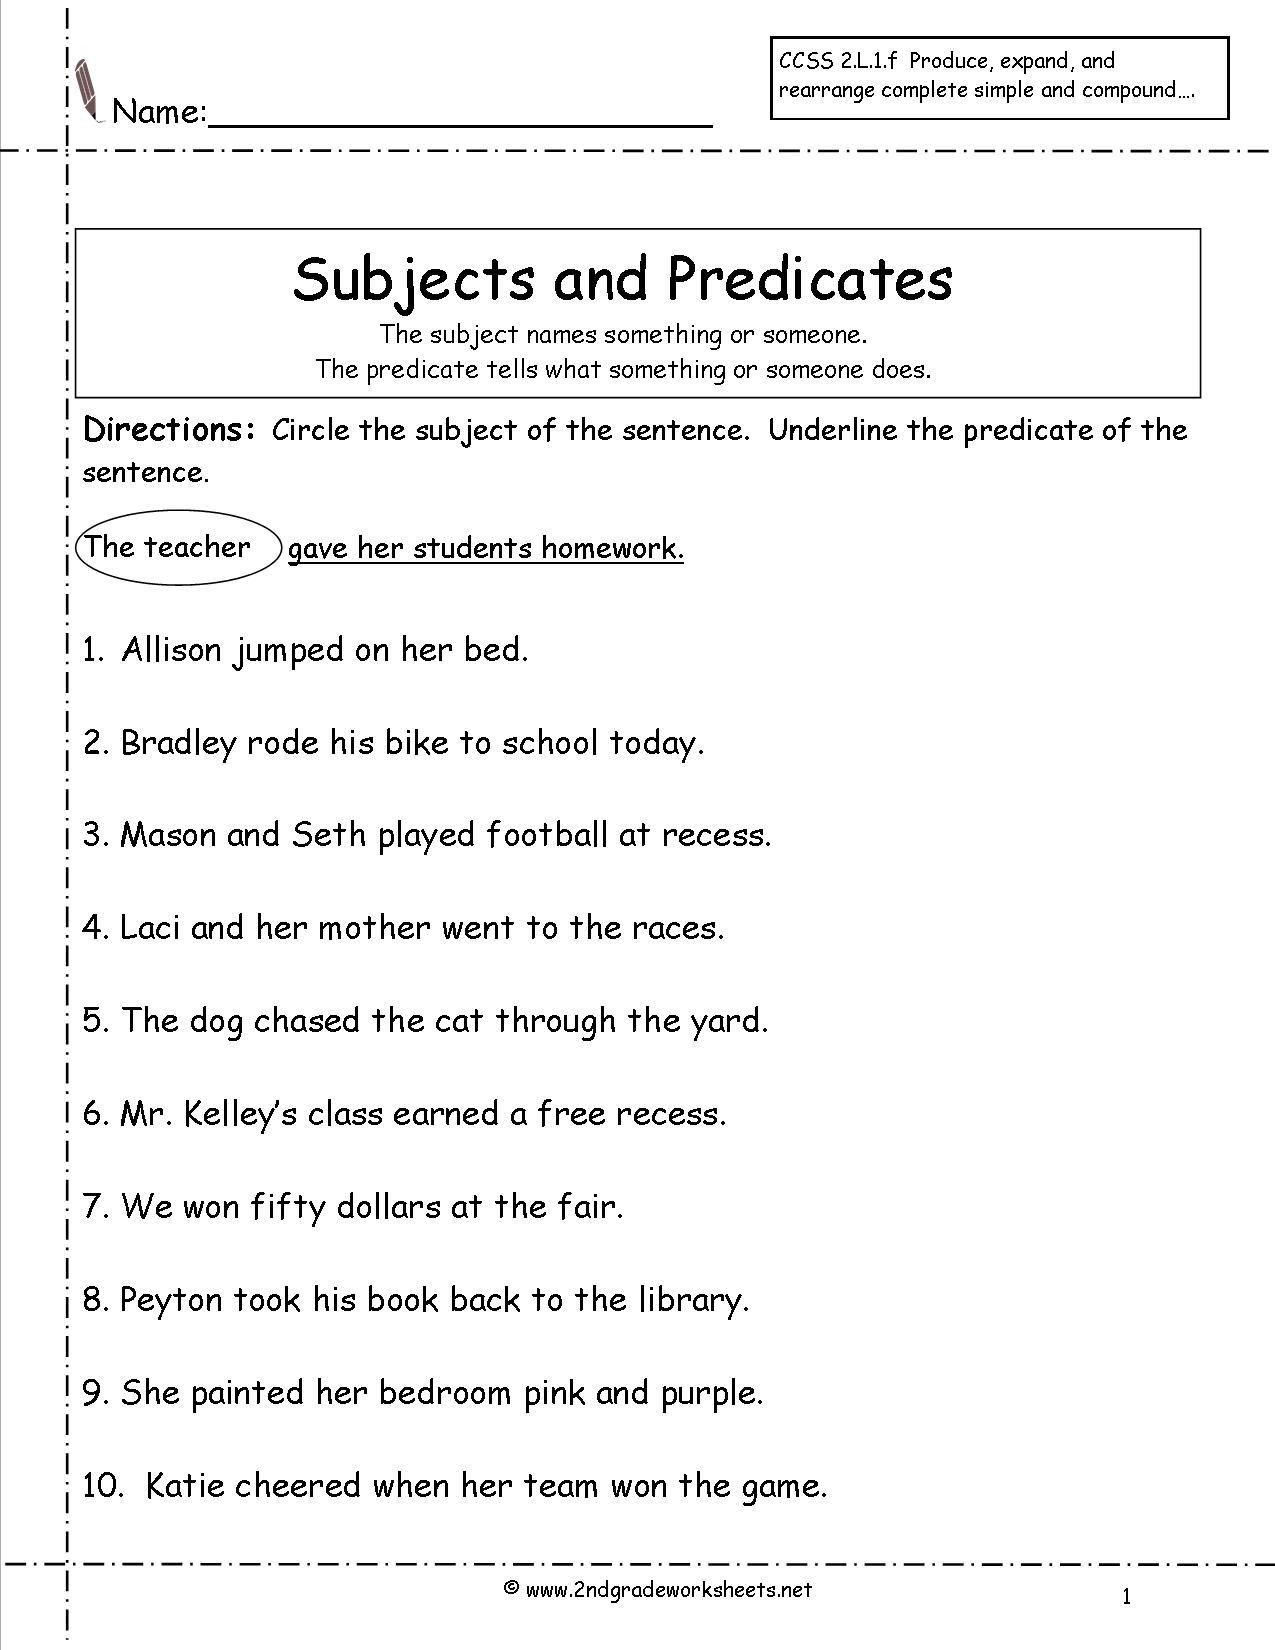 Grammar Worksheets for 2nd Grade Subject Predicate Worksheets 2nd Grade Google Search